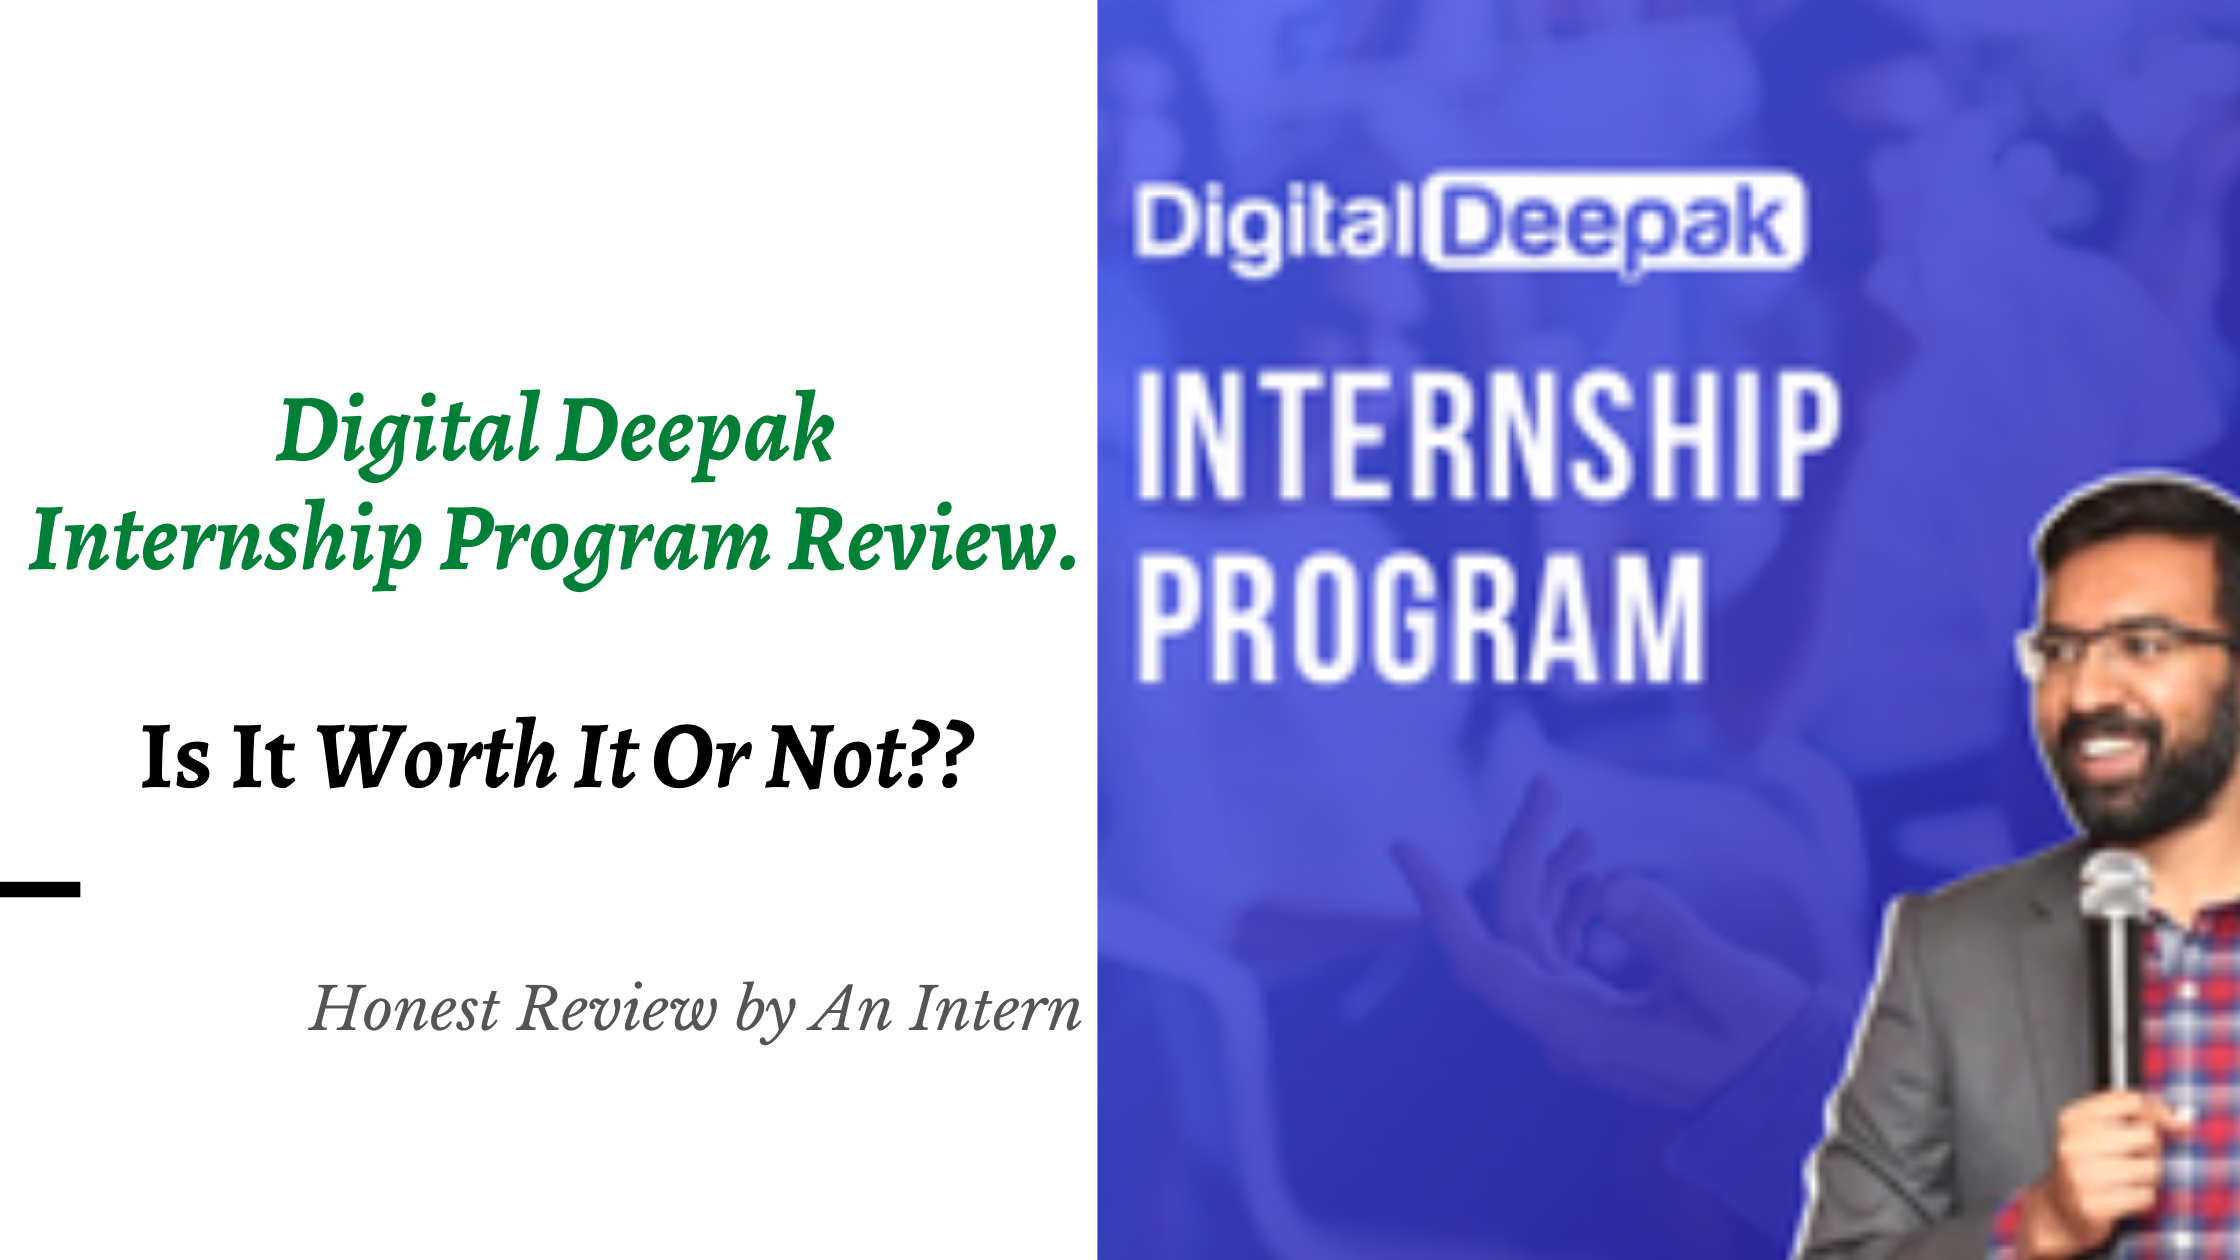 Digital Deepak Internship Program Review